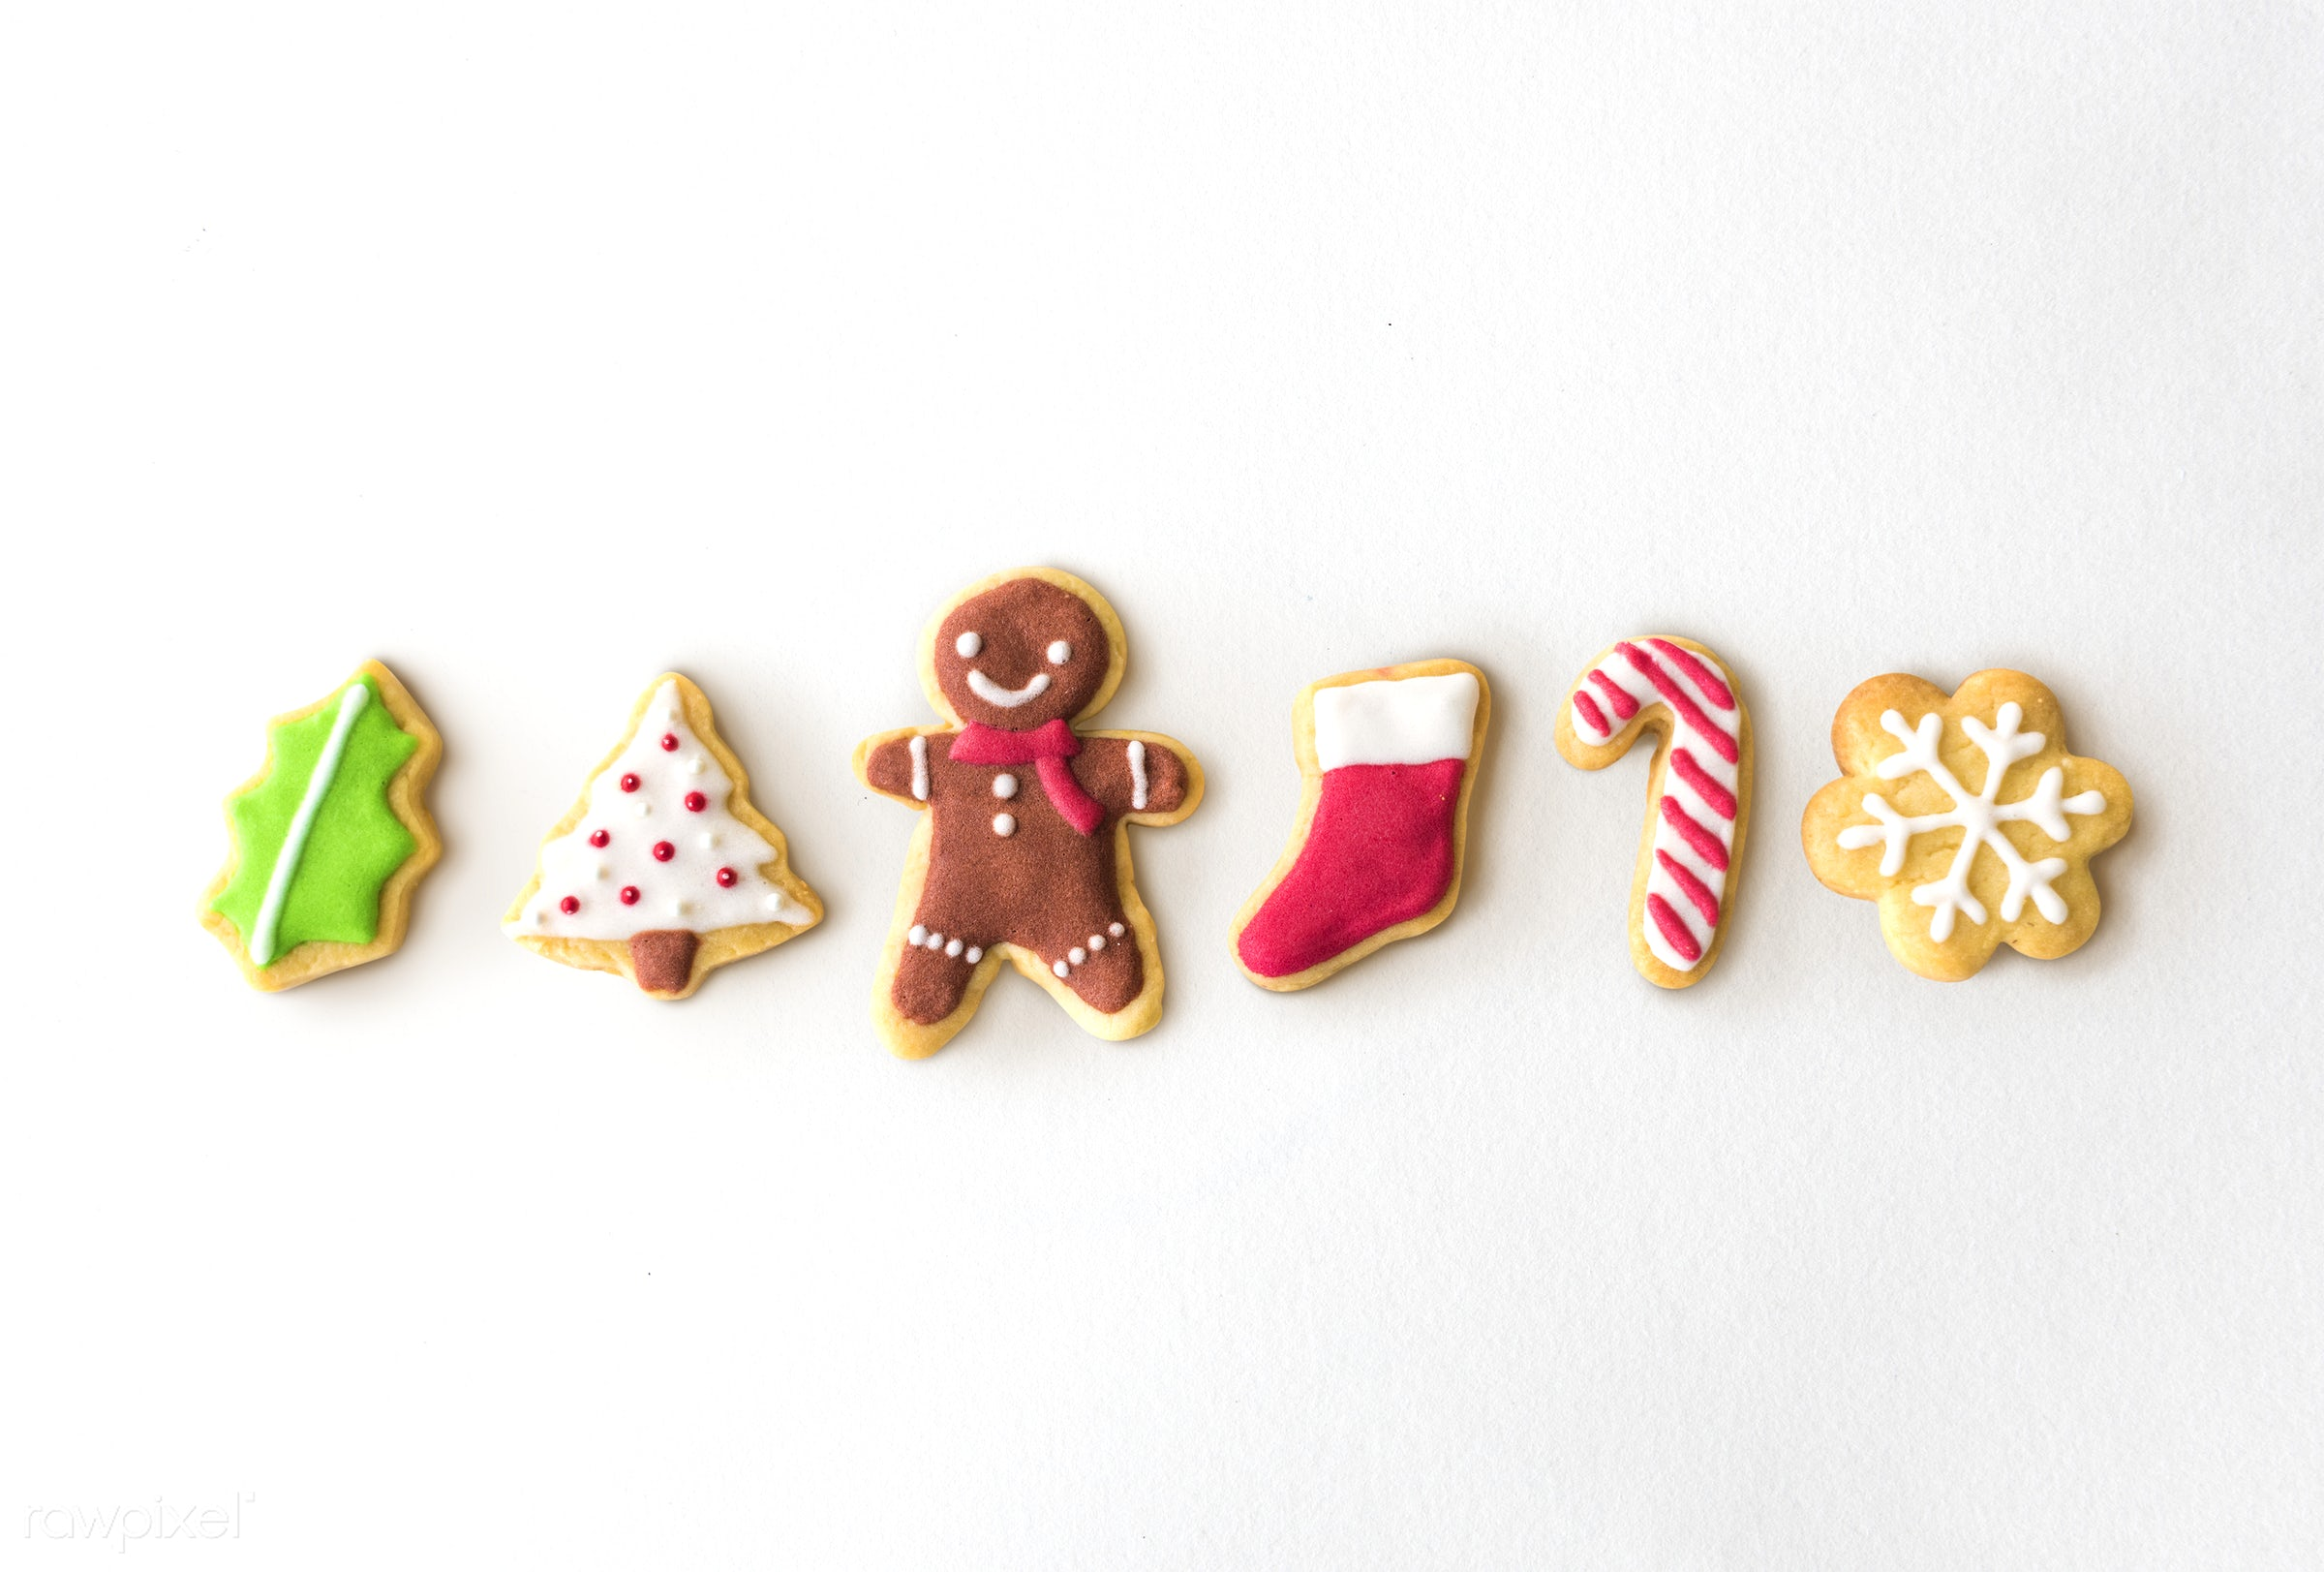 winter, baked, bakery, biscuit, biscuits, cake, celebration, cheerful, christmas, closeup, cookie, decoration, delicious,...